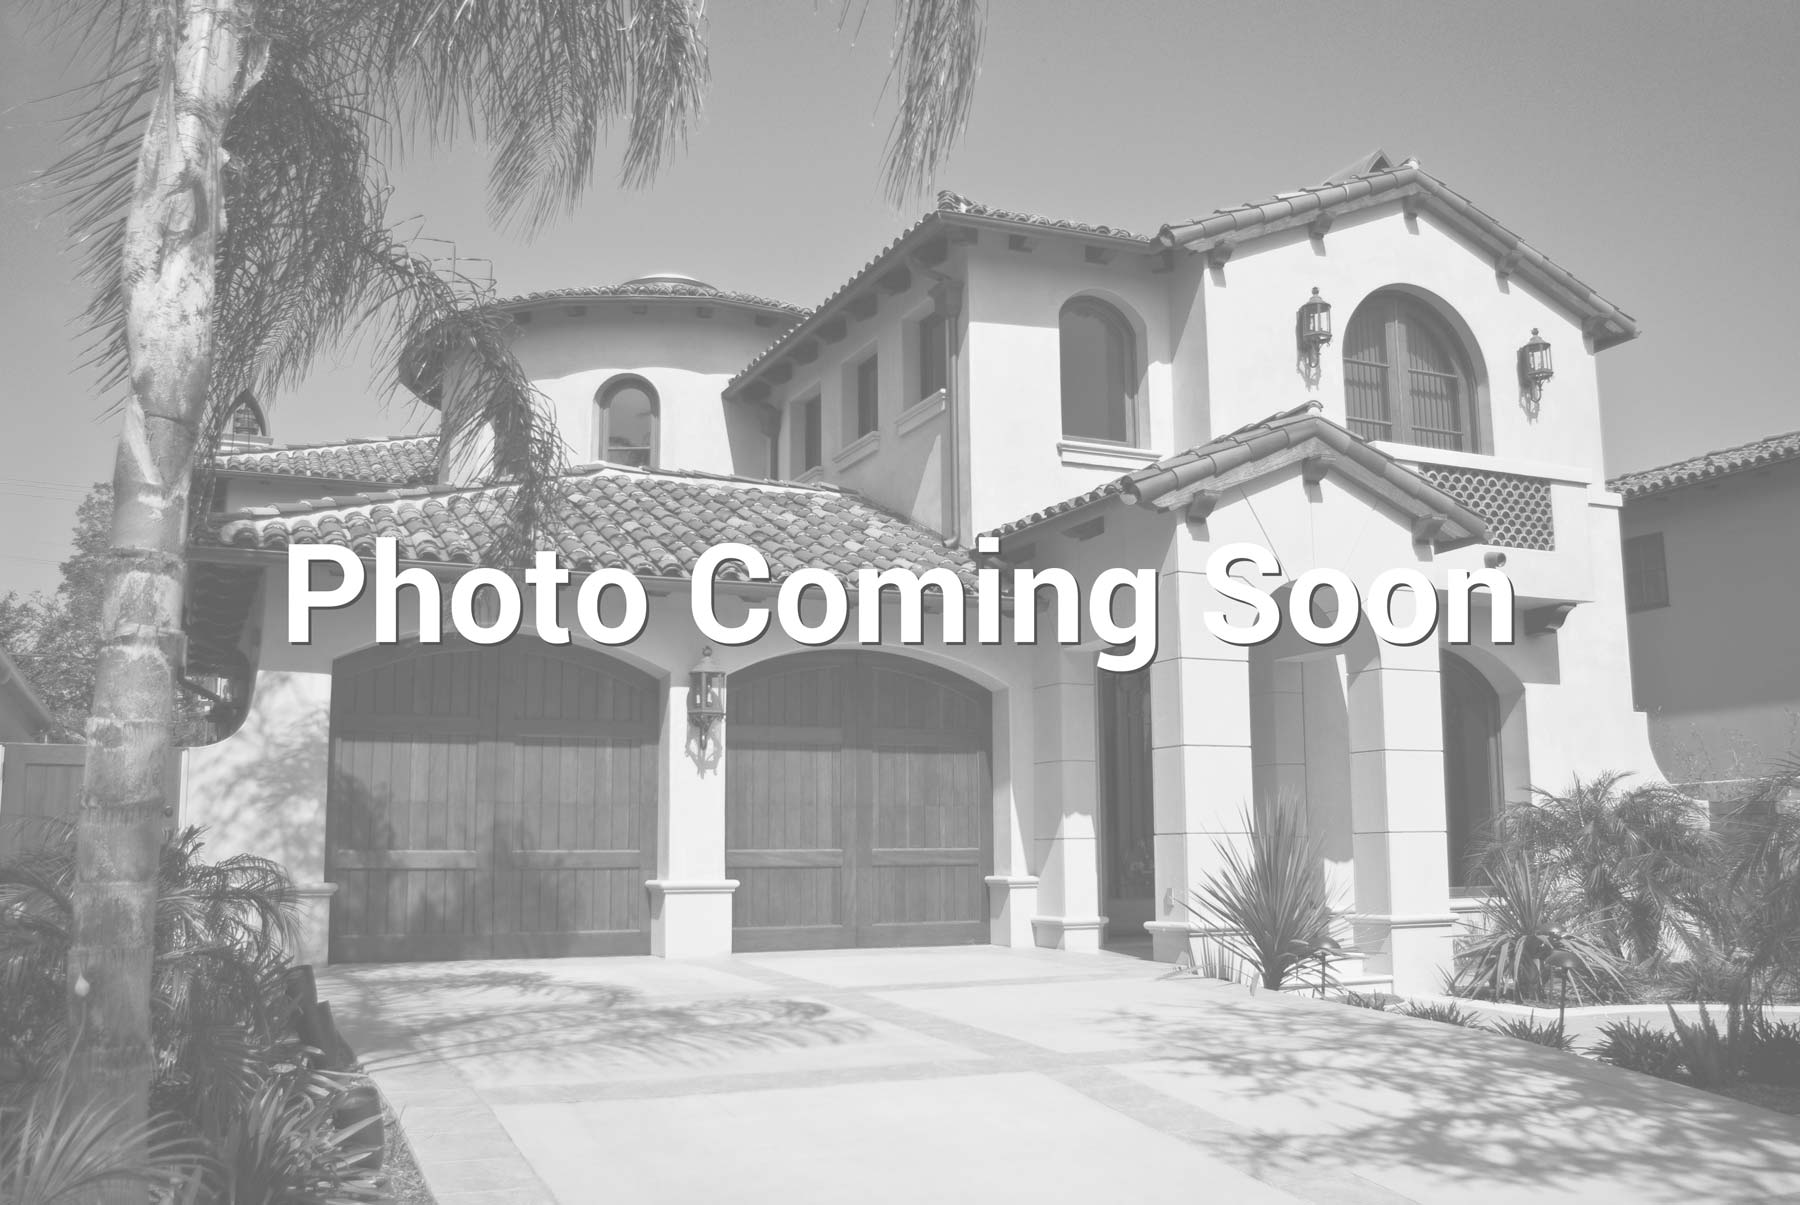 $2,600 - 3Br/2Ba -  for Sale in Ventura